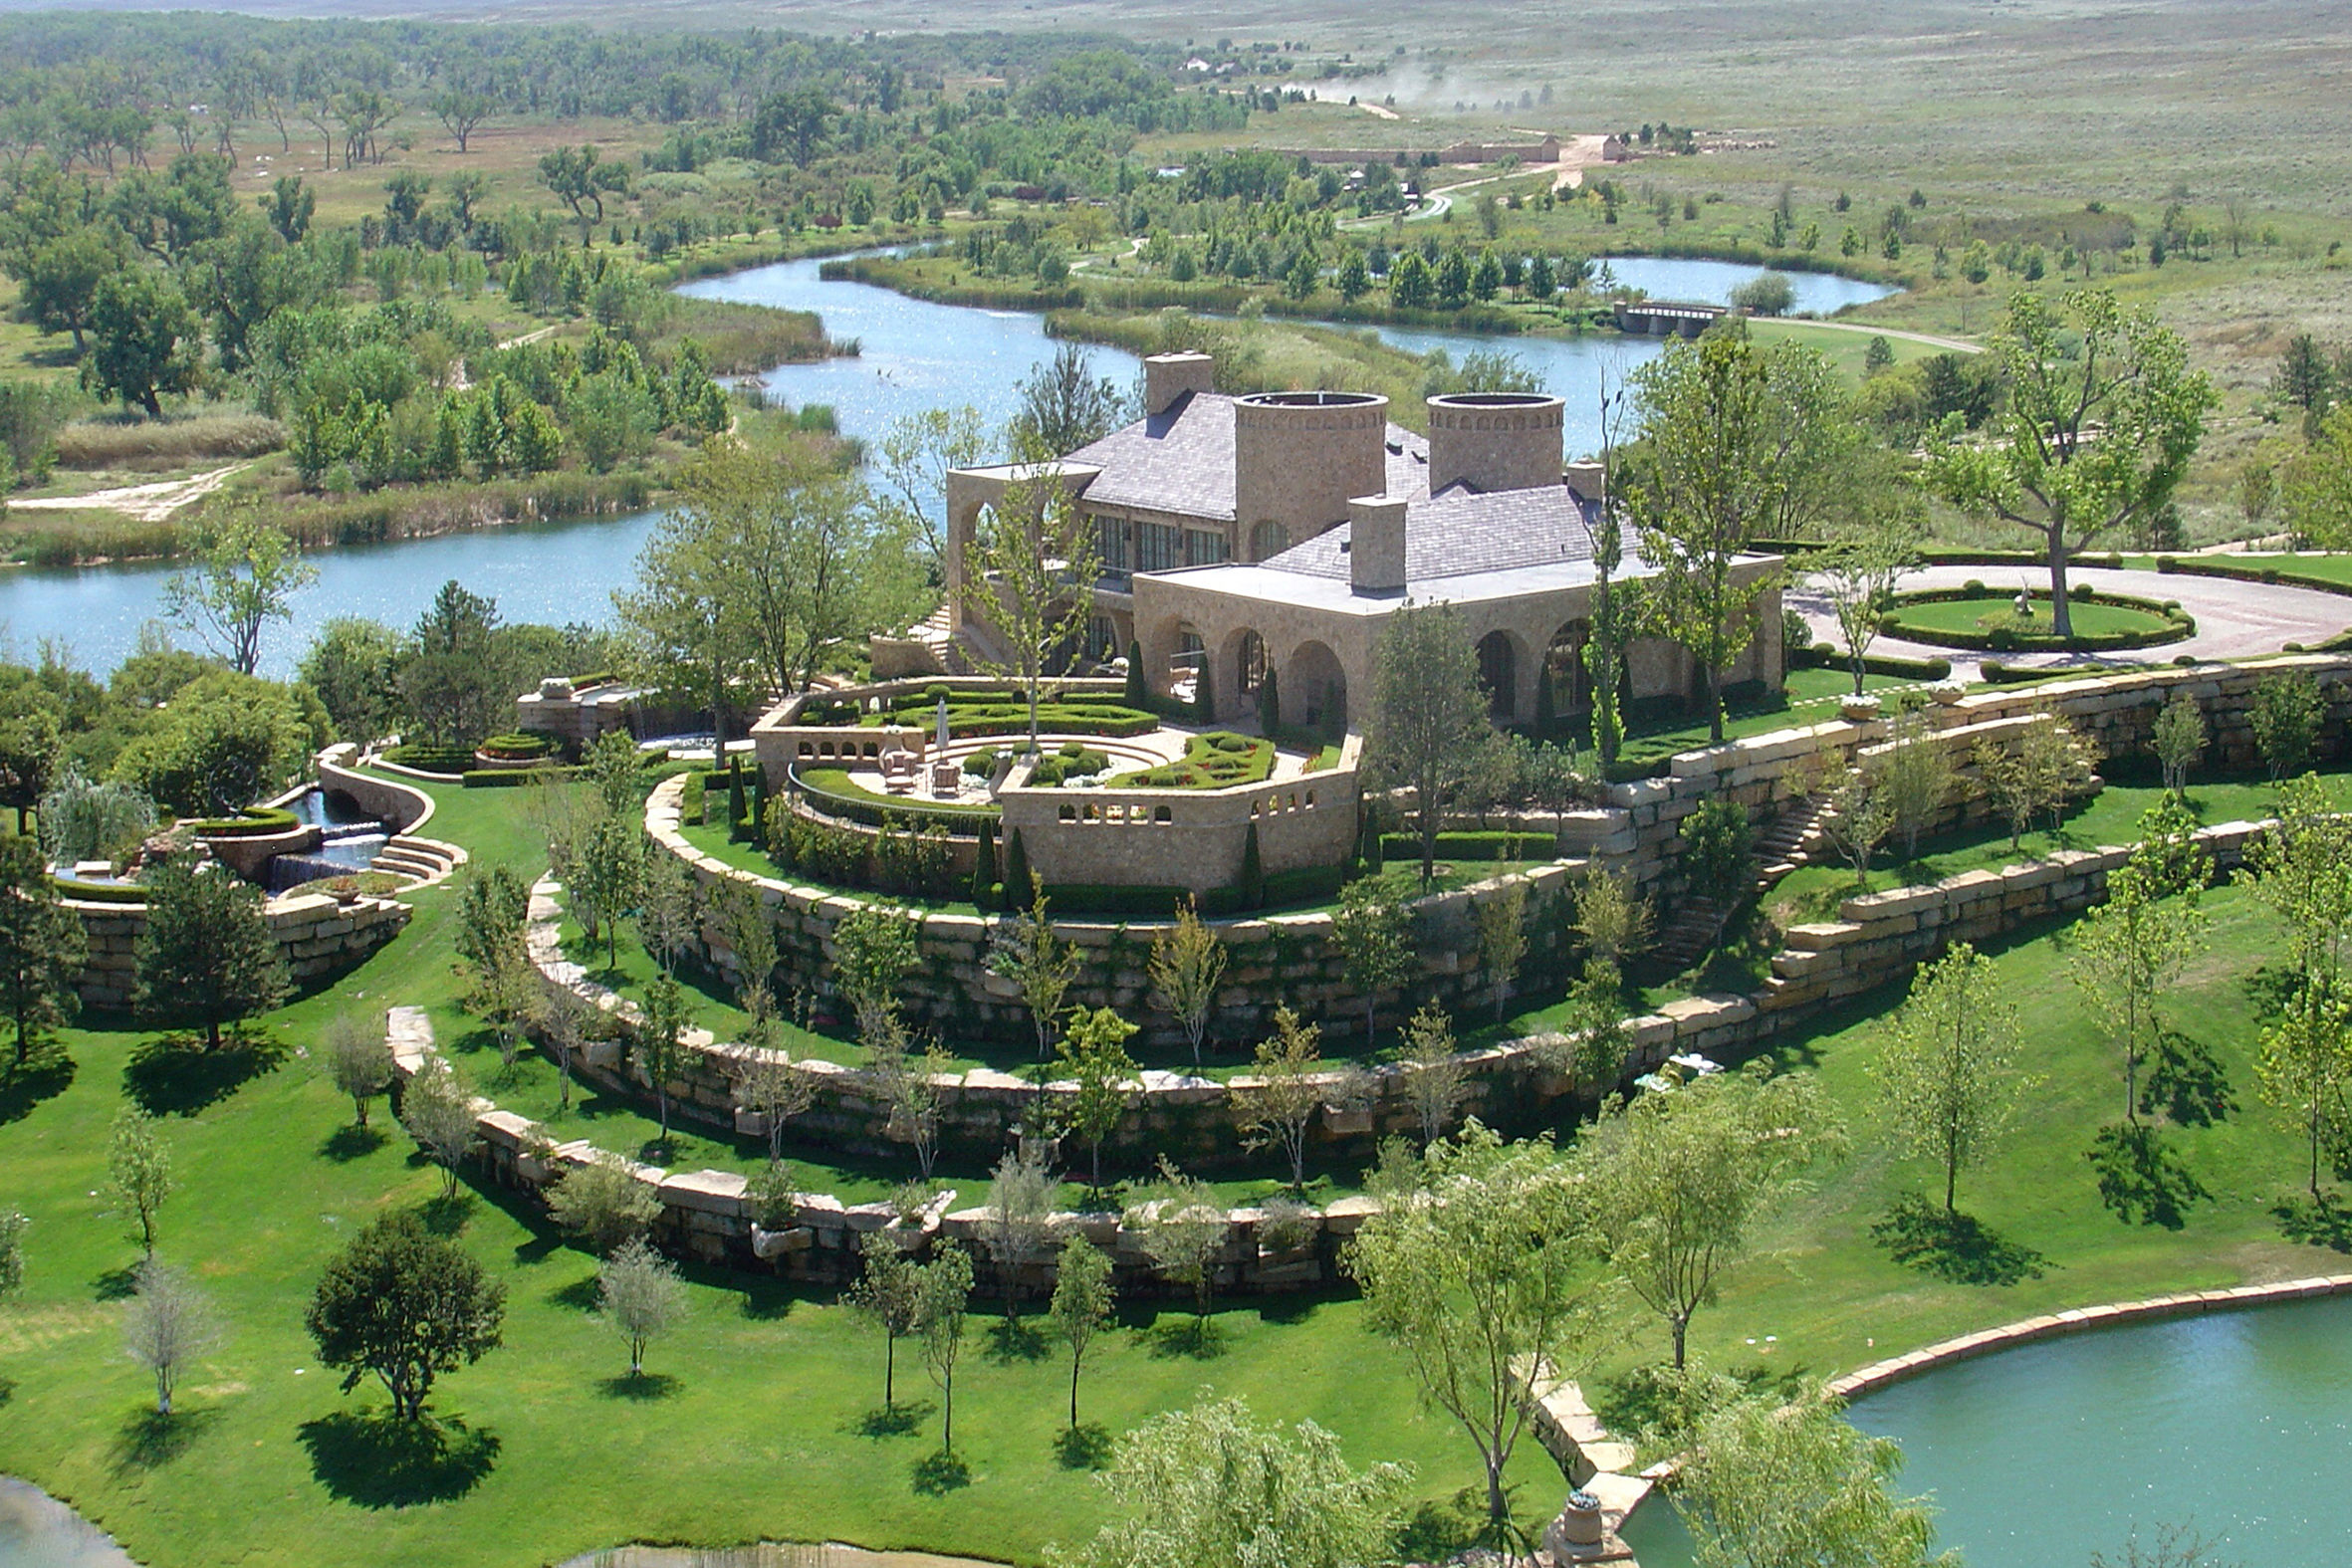 Oil Tycoon T. Boone Pickens is Selling His Texas Ranch for $250 Million